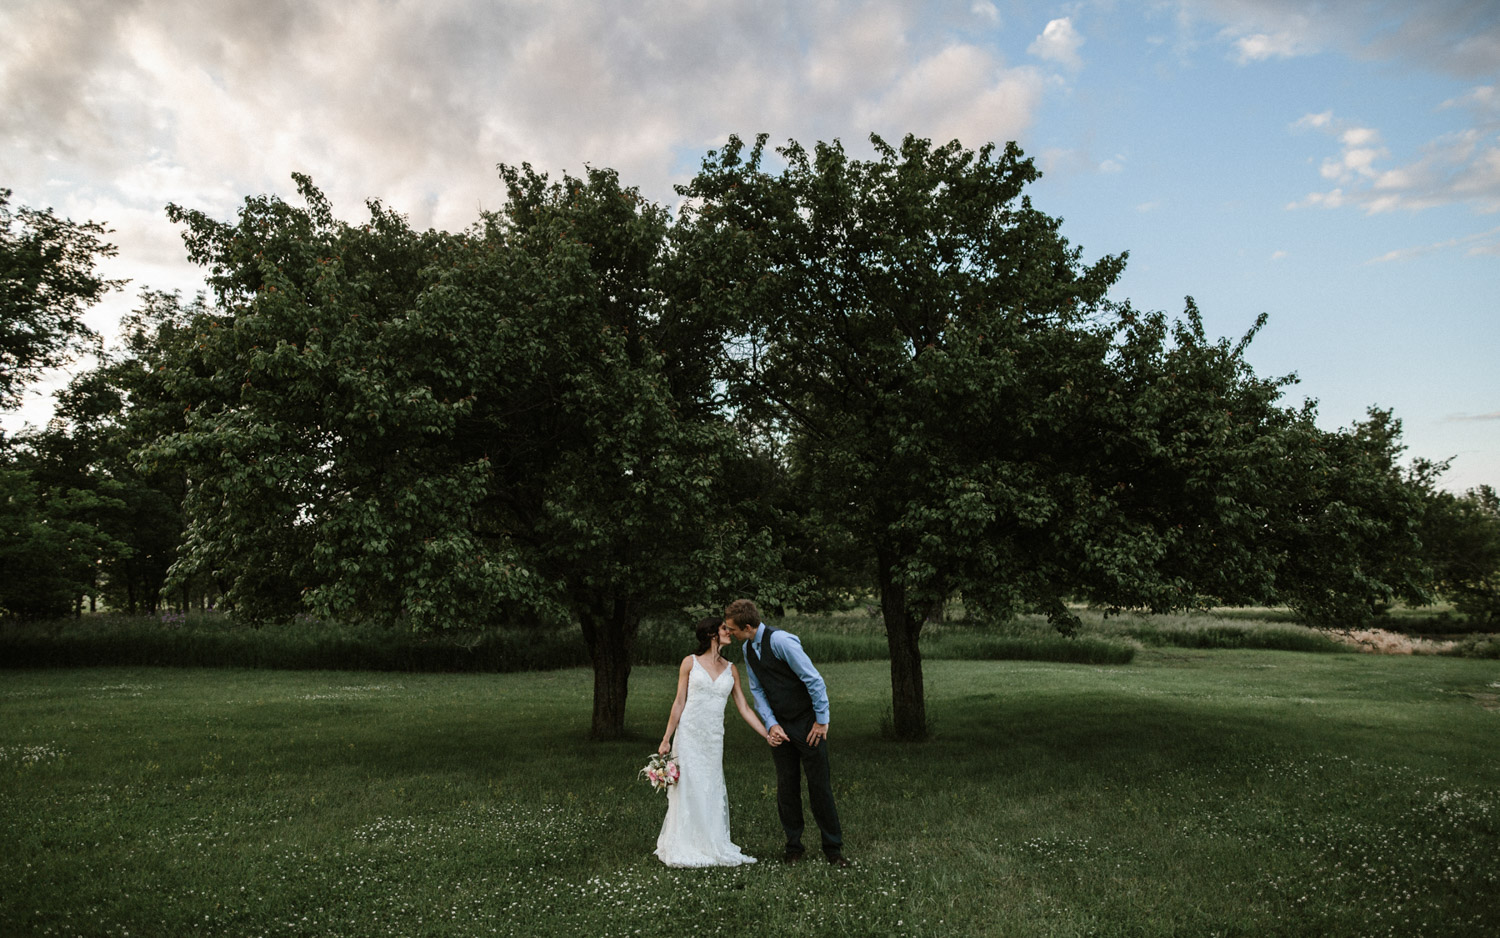 Outdoor_Wedding_SiouxFalls_MaryJoWegnerArboretum_Photographer_Calli&Jon_138.jpg